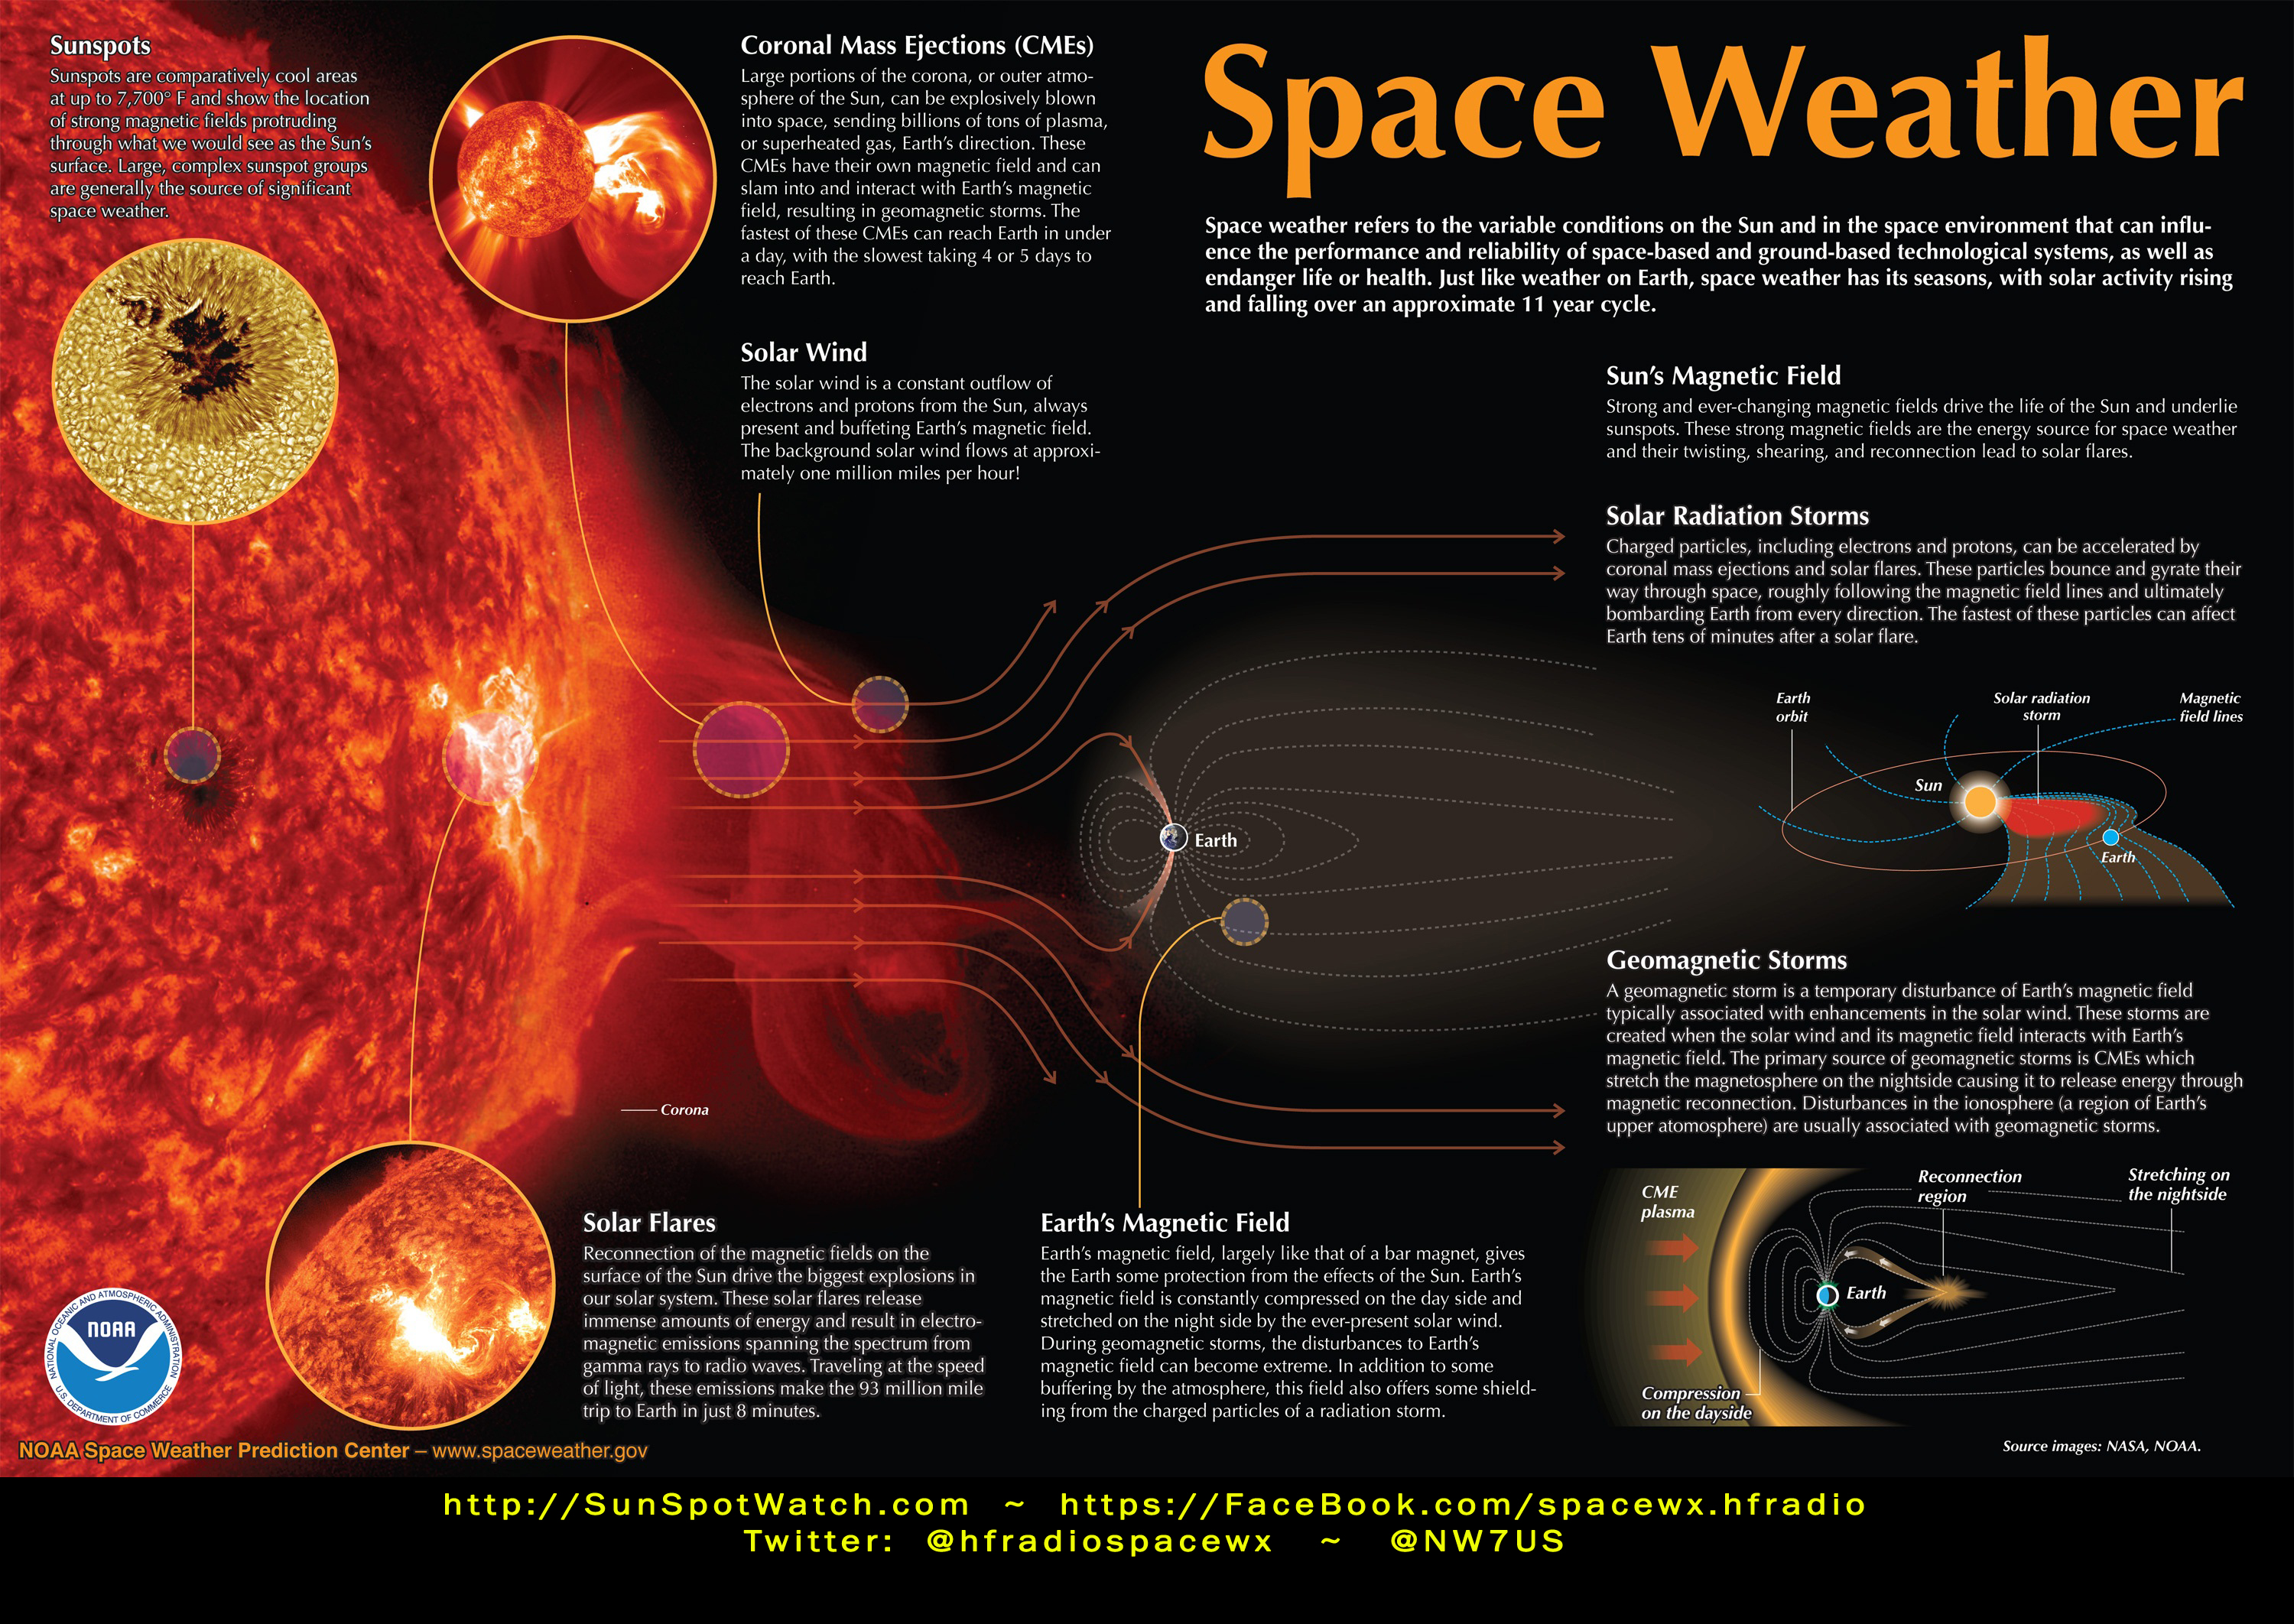 What is Space Weather? Slide 1 of 2